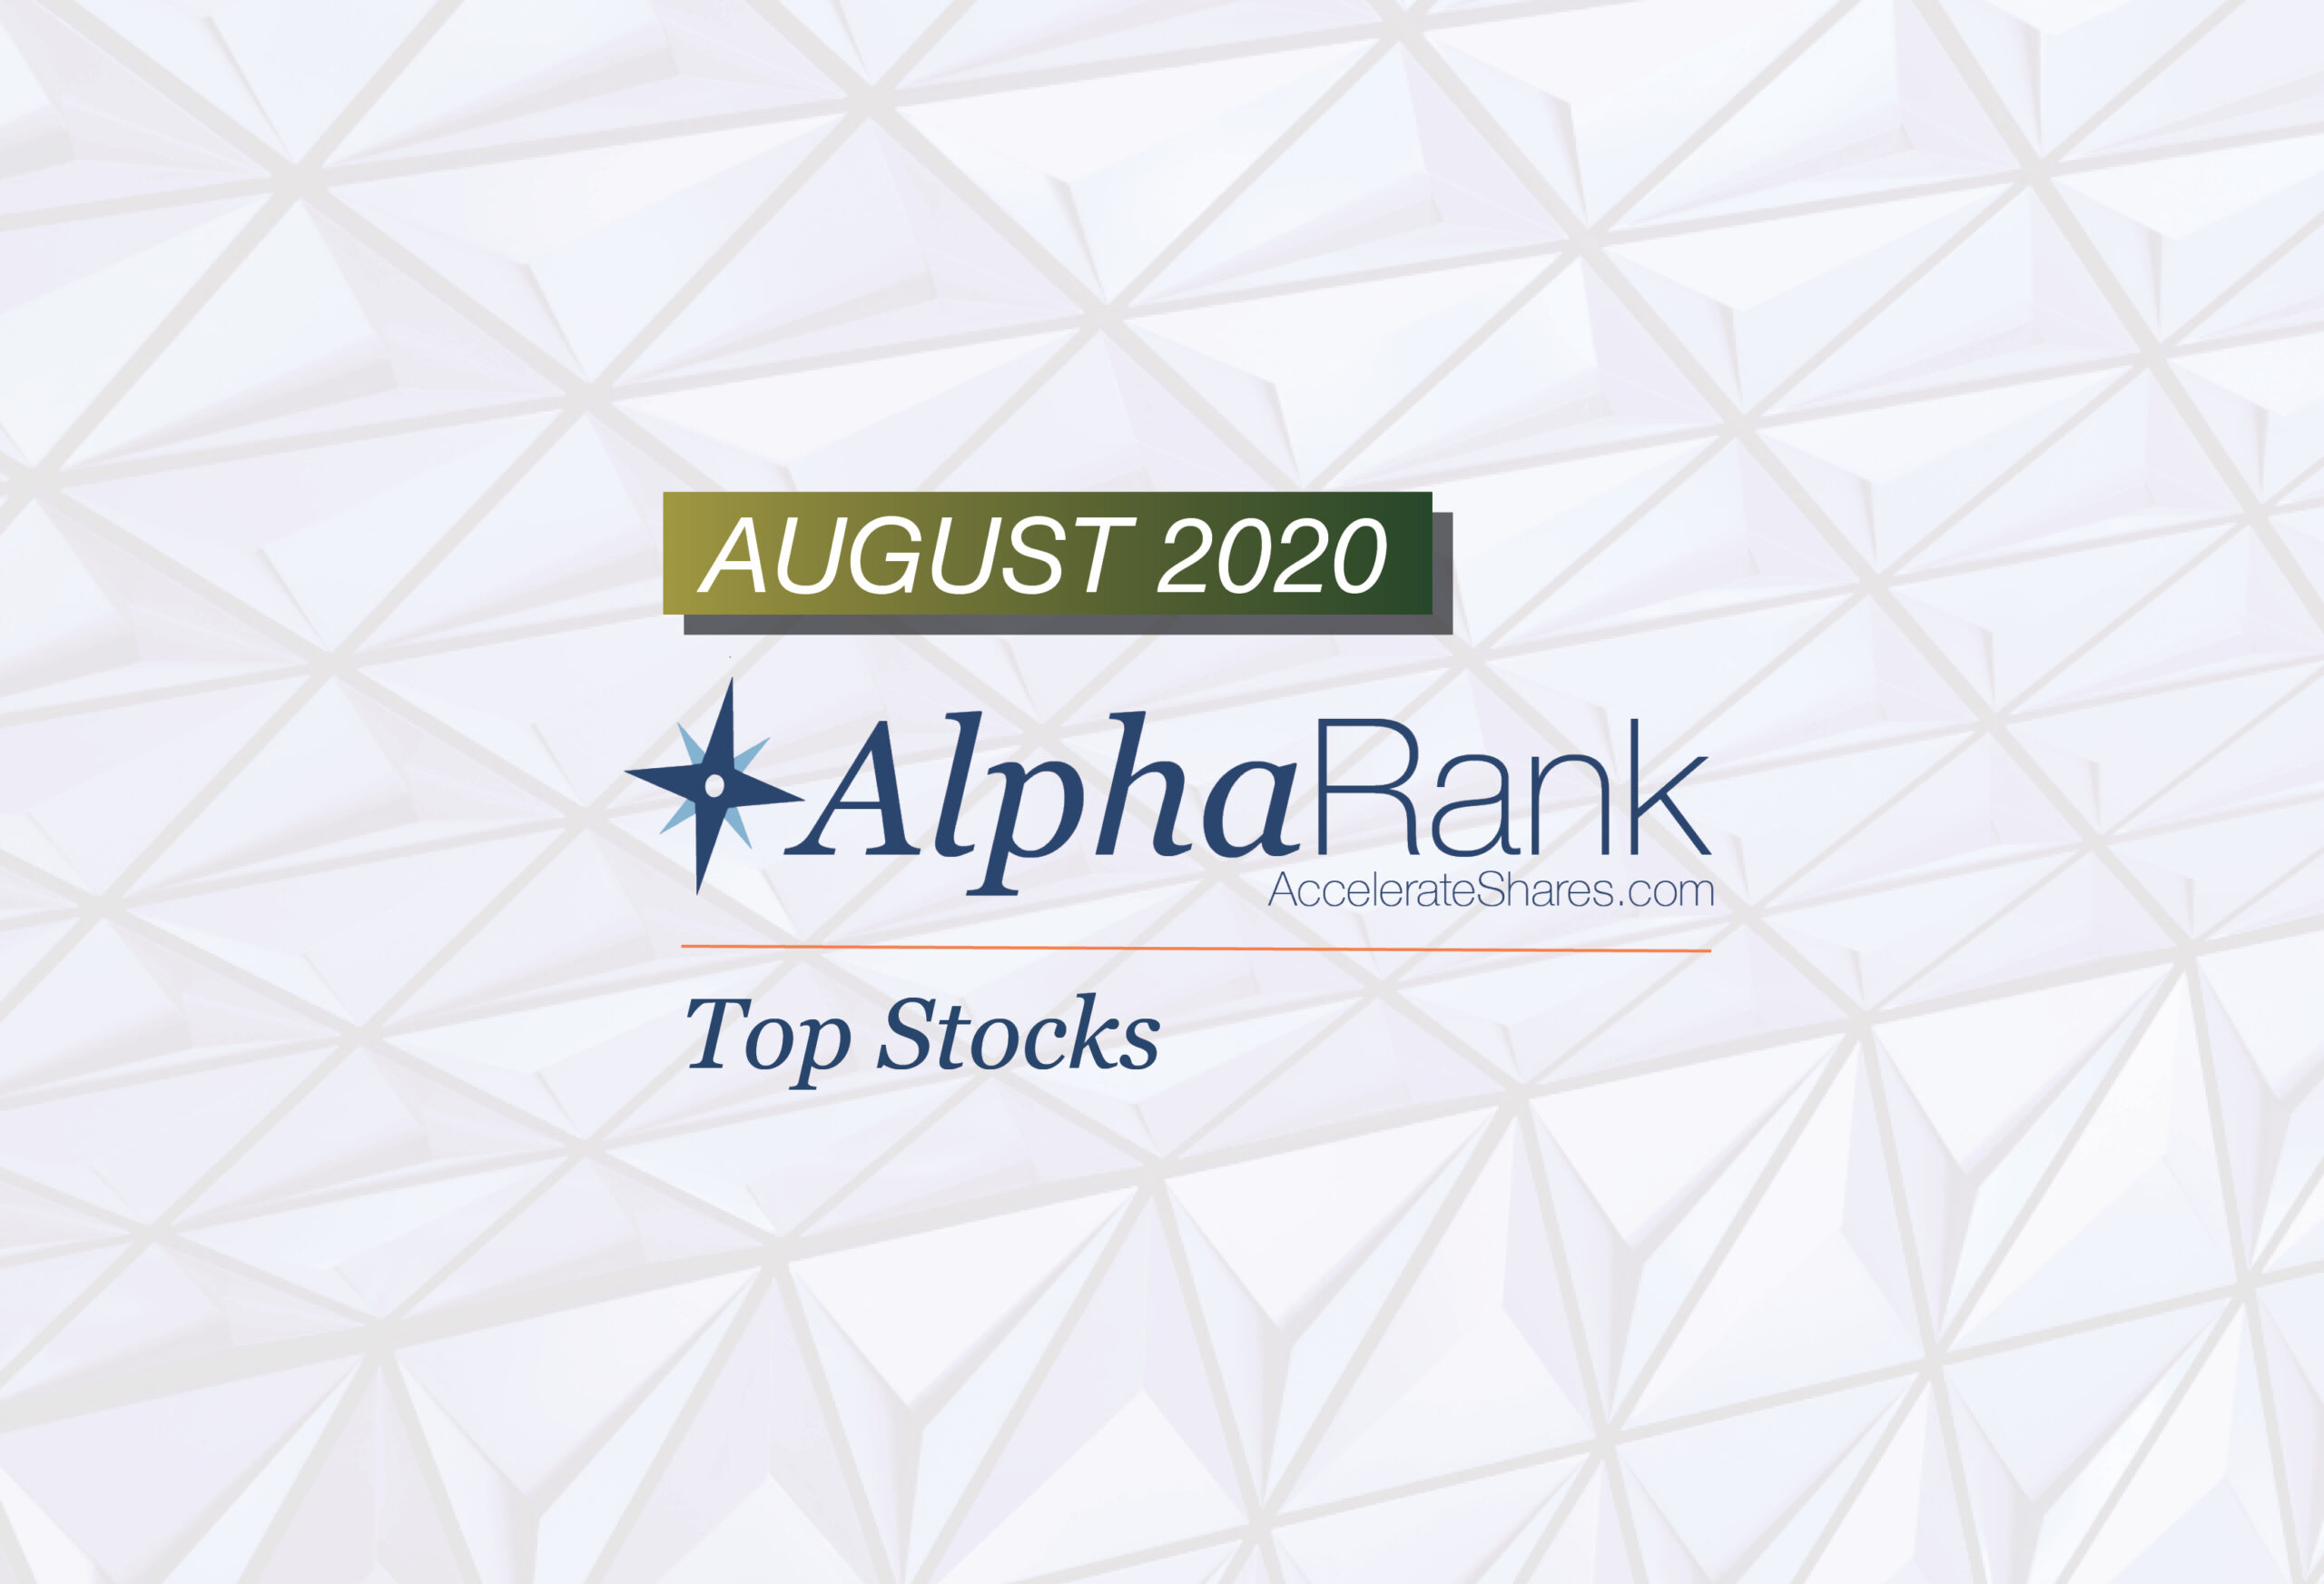 AlphaRank Top Stocks—August 2020